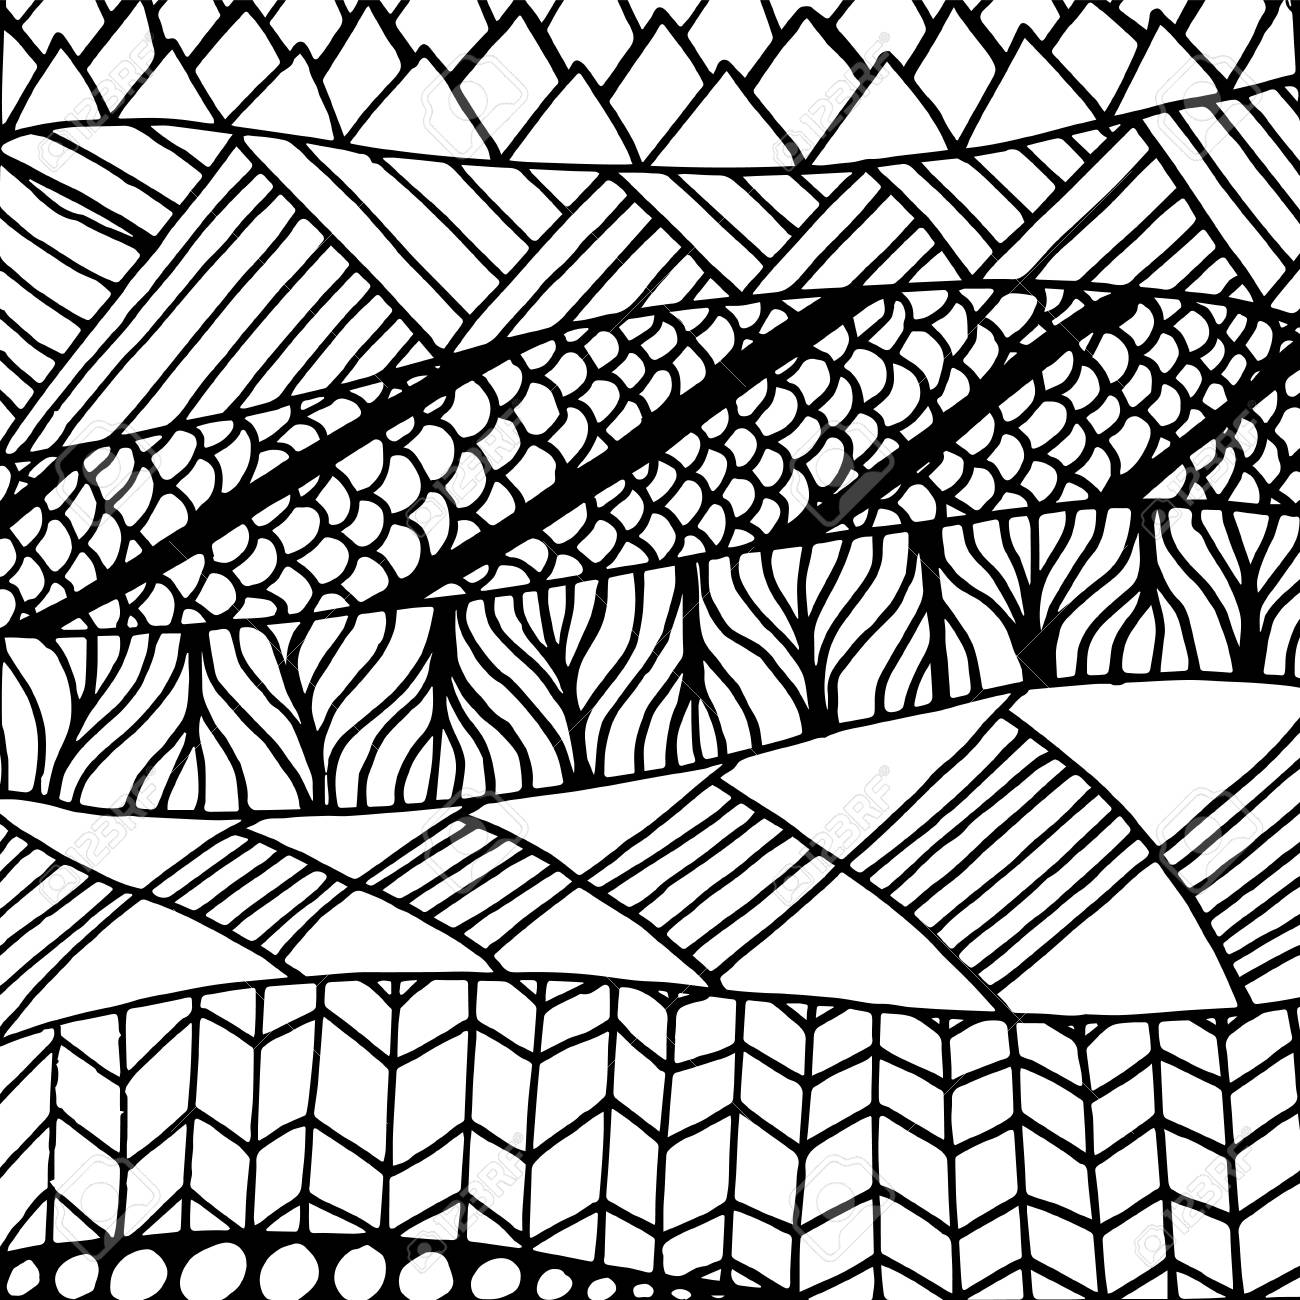 Zentangle doodle pattern for coloring book and adults  Made by